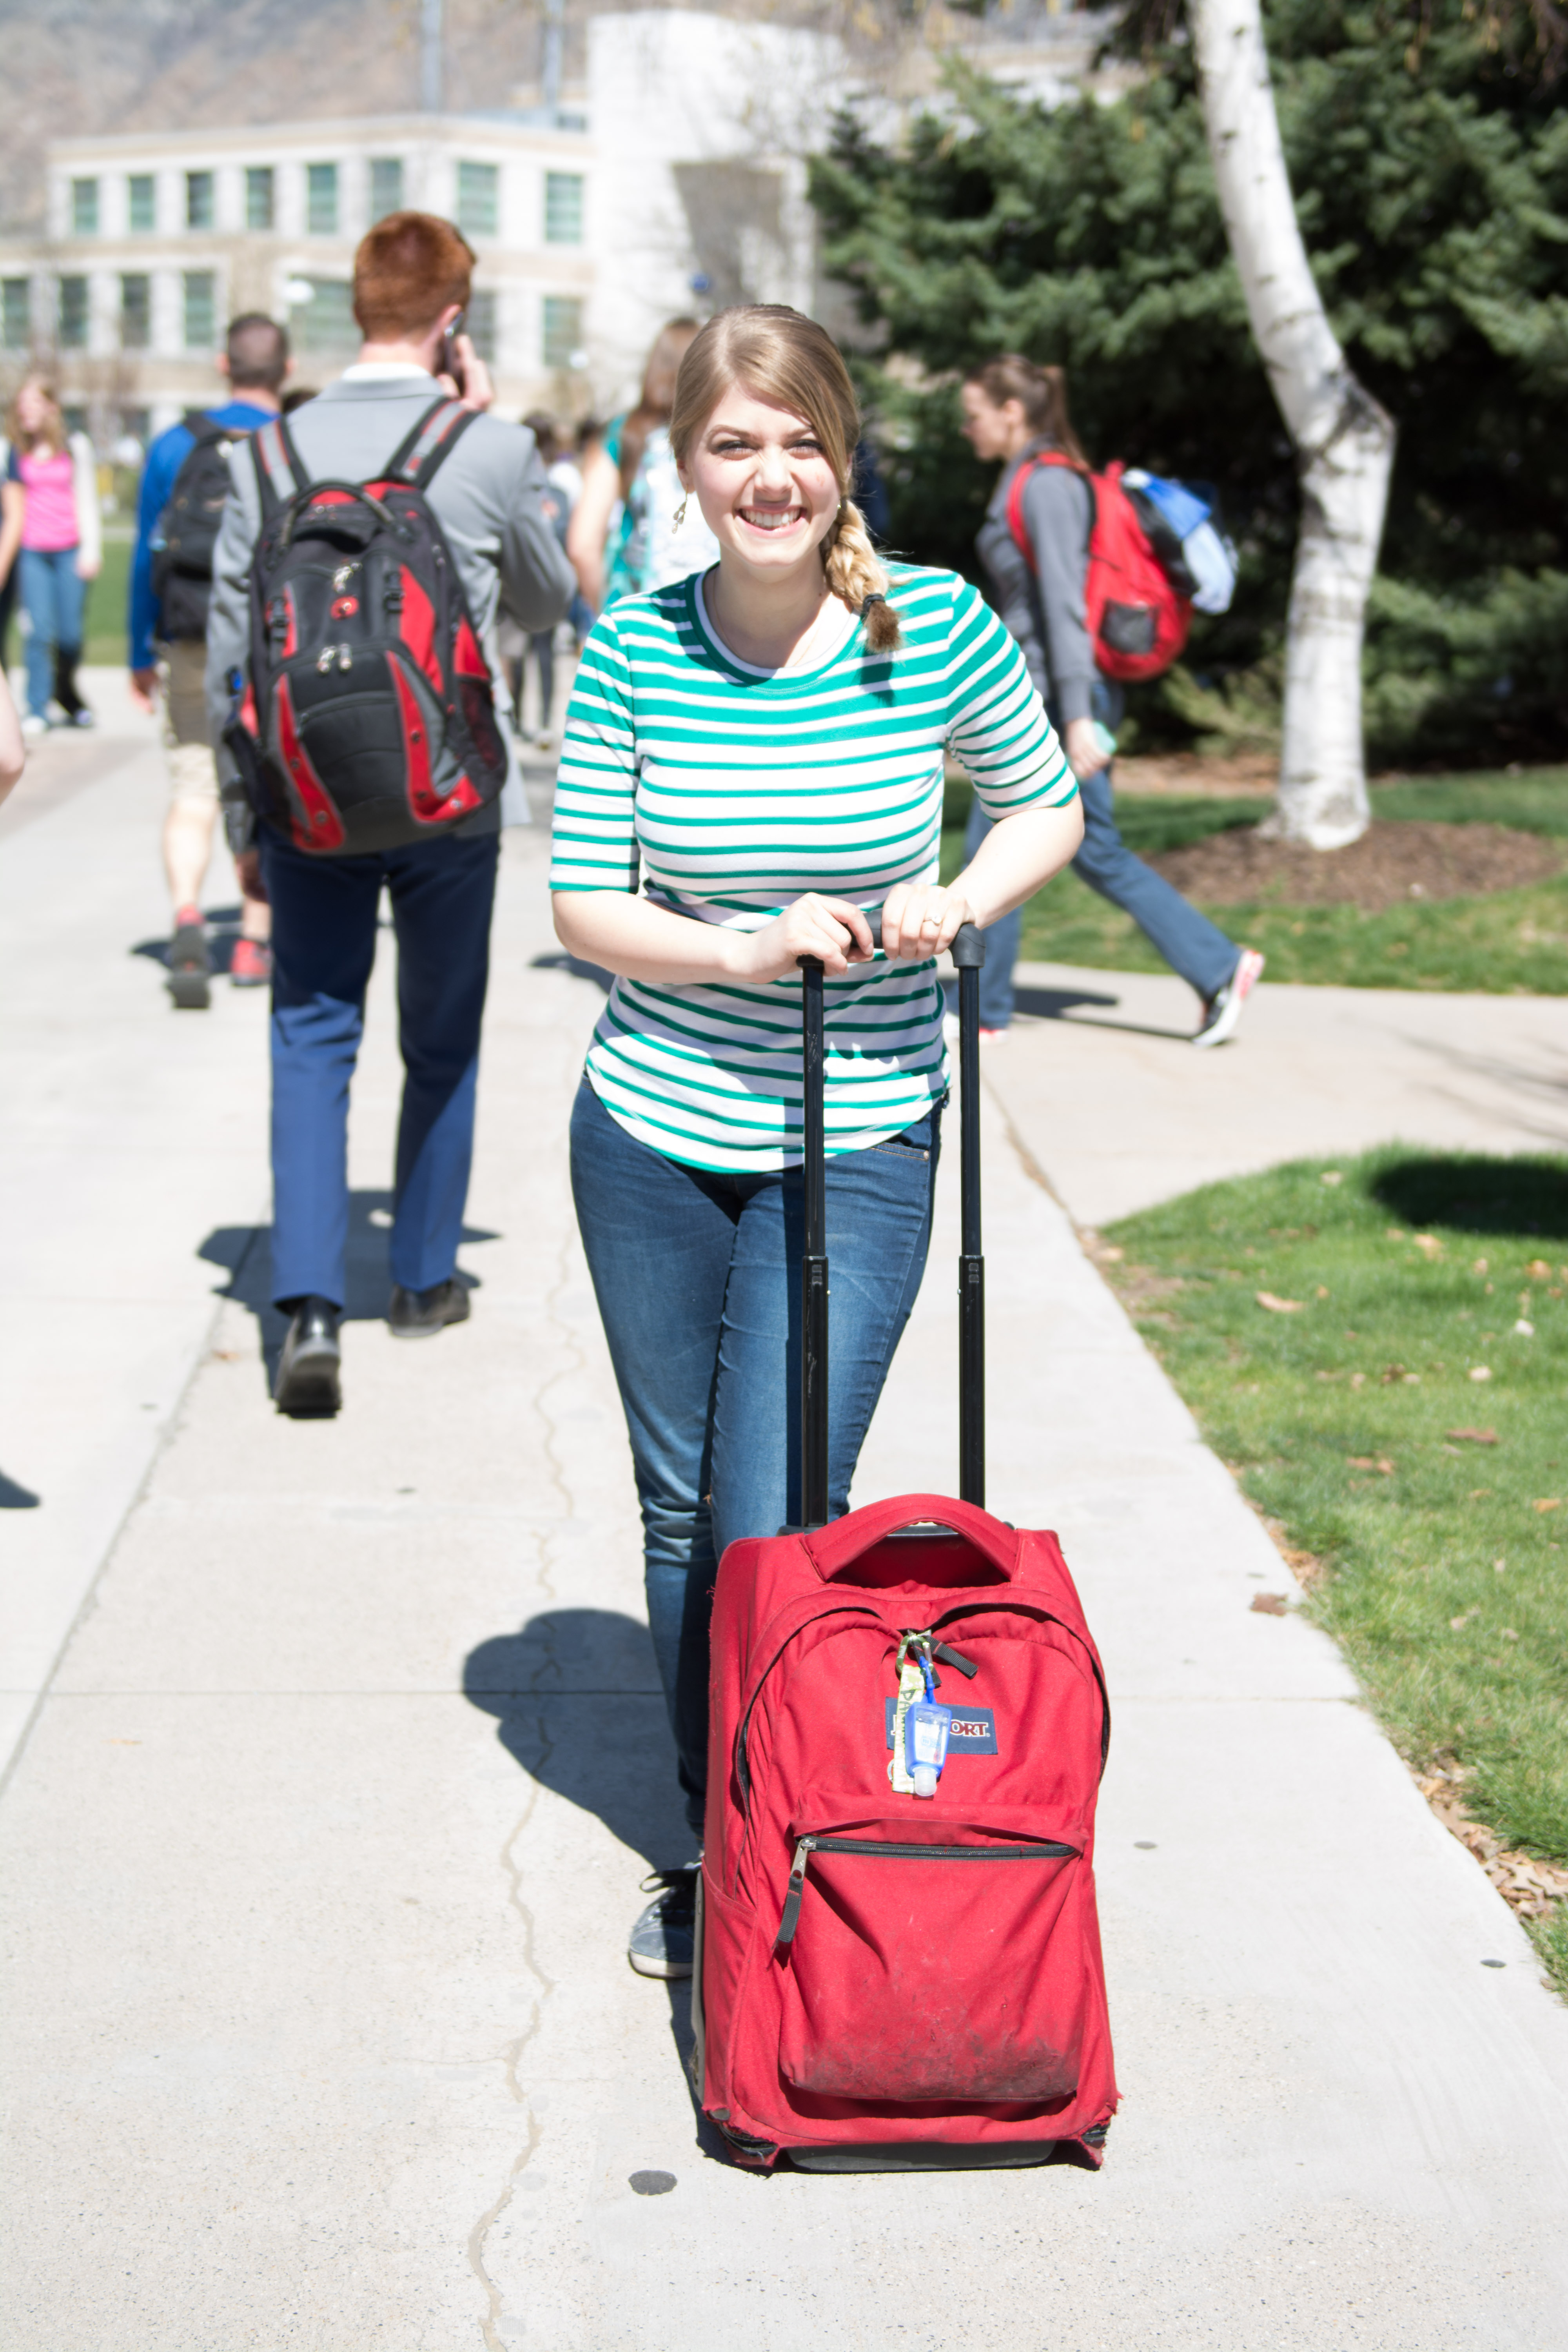 679e6ca34f Alternatives exist to the conventional backpack - The Daily Universe